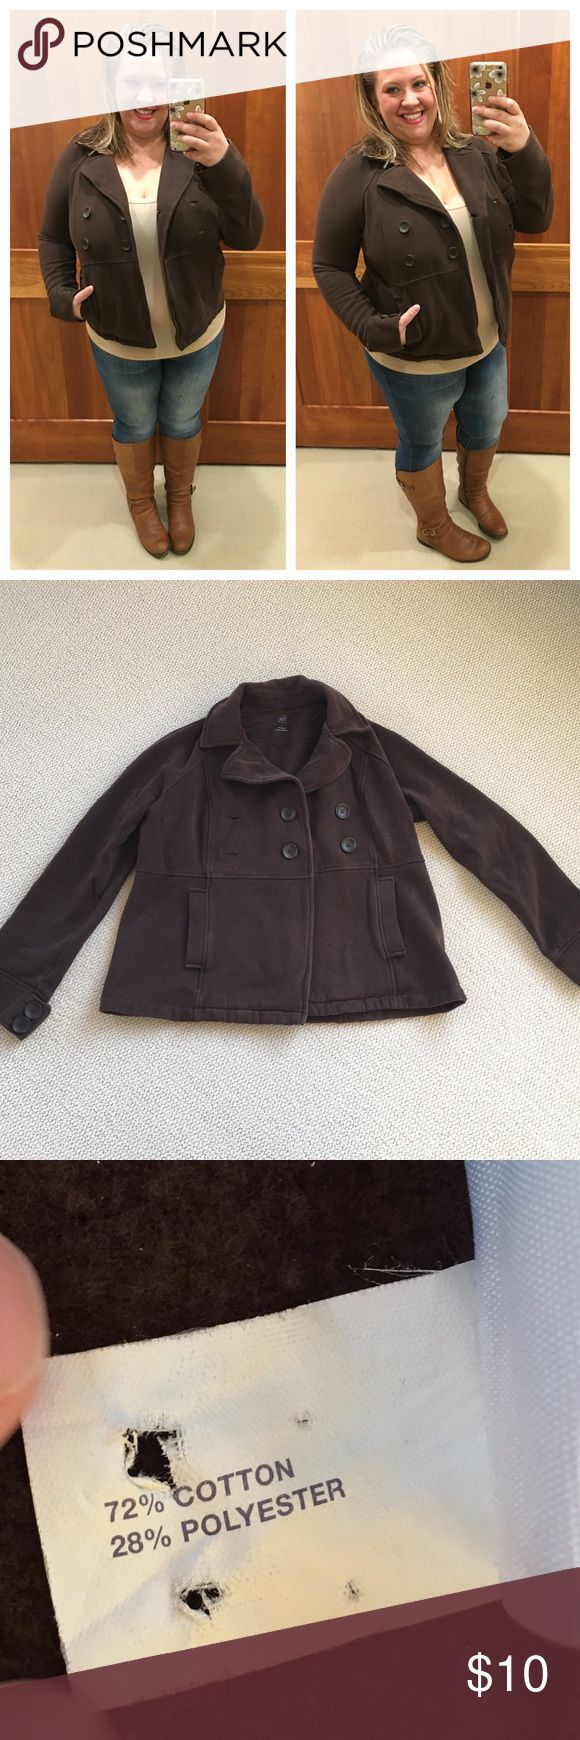 Chocolate Brown GAP Jacket Pre-loved (no rips/tears/stains but interior pilling throughout...price reflective of wear), 4 front peacoat-style buttons. 2 front pockets. Soft and cozy. Size L. GAP Jackets & Coats